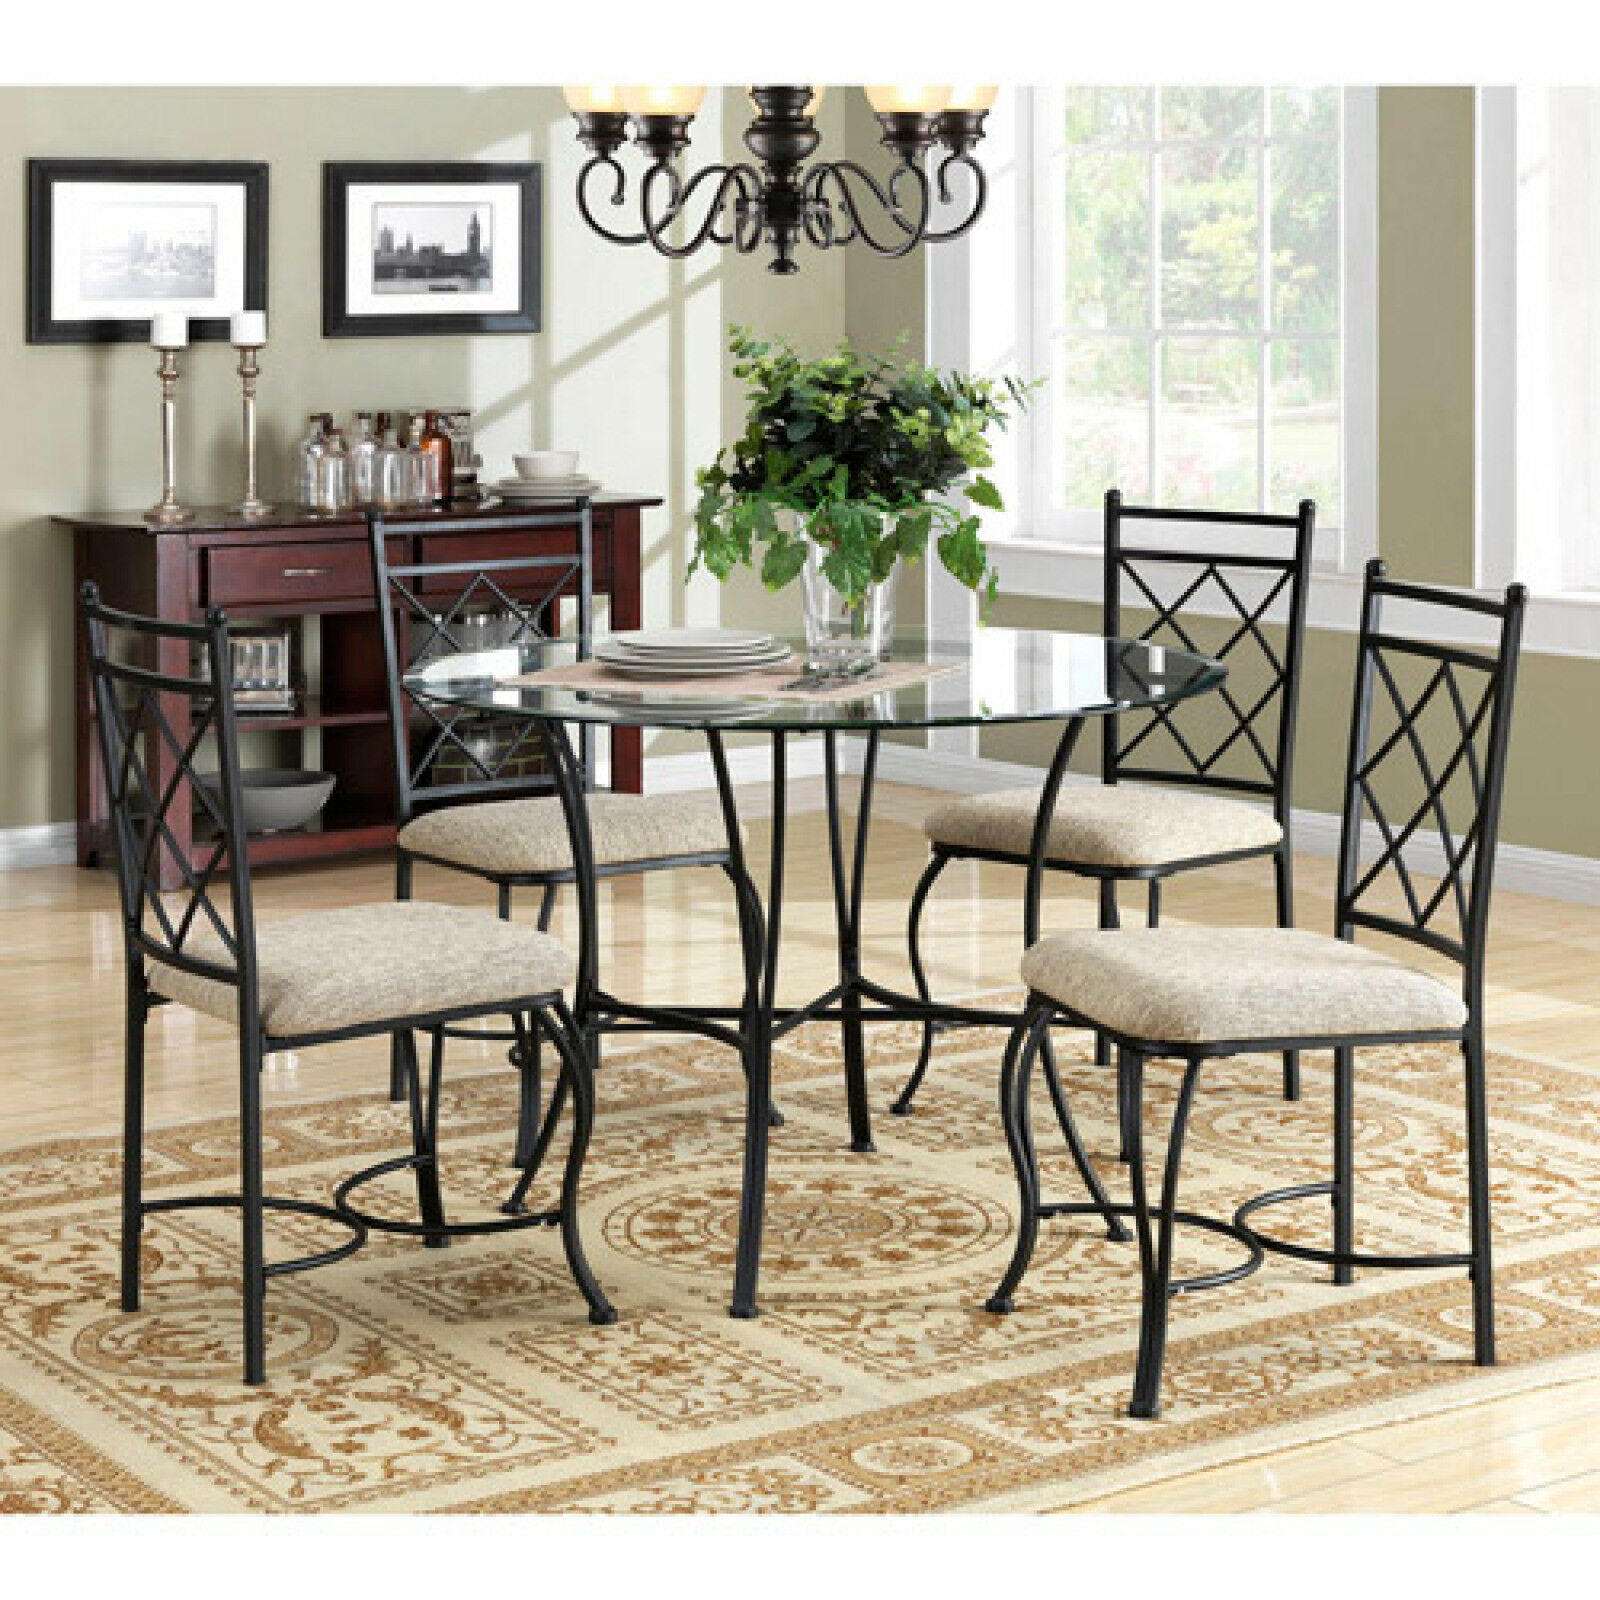 Dining Table Set Glass Top Metal Legs Kitchen Formal ...